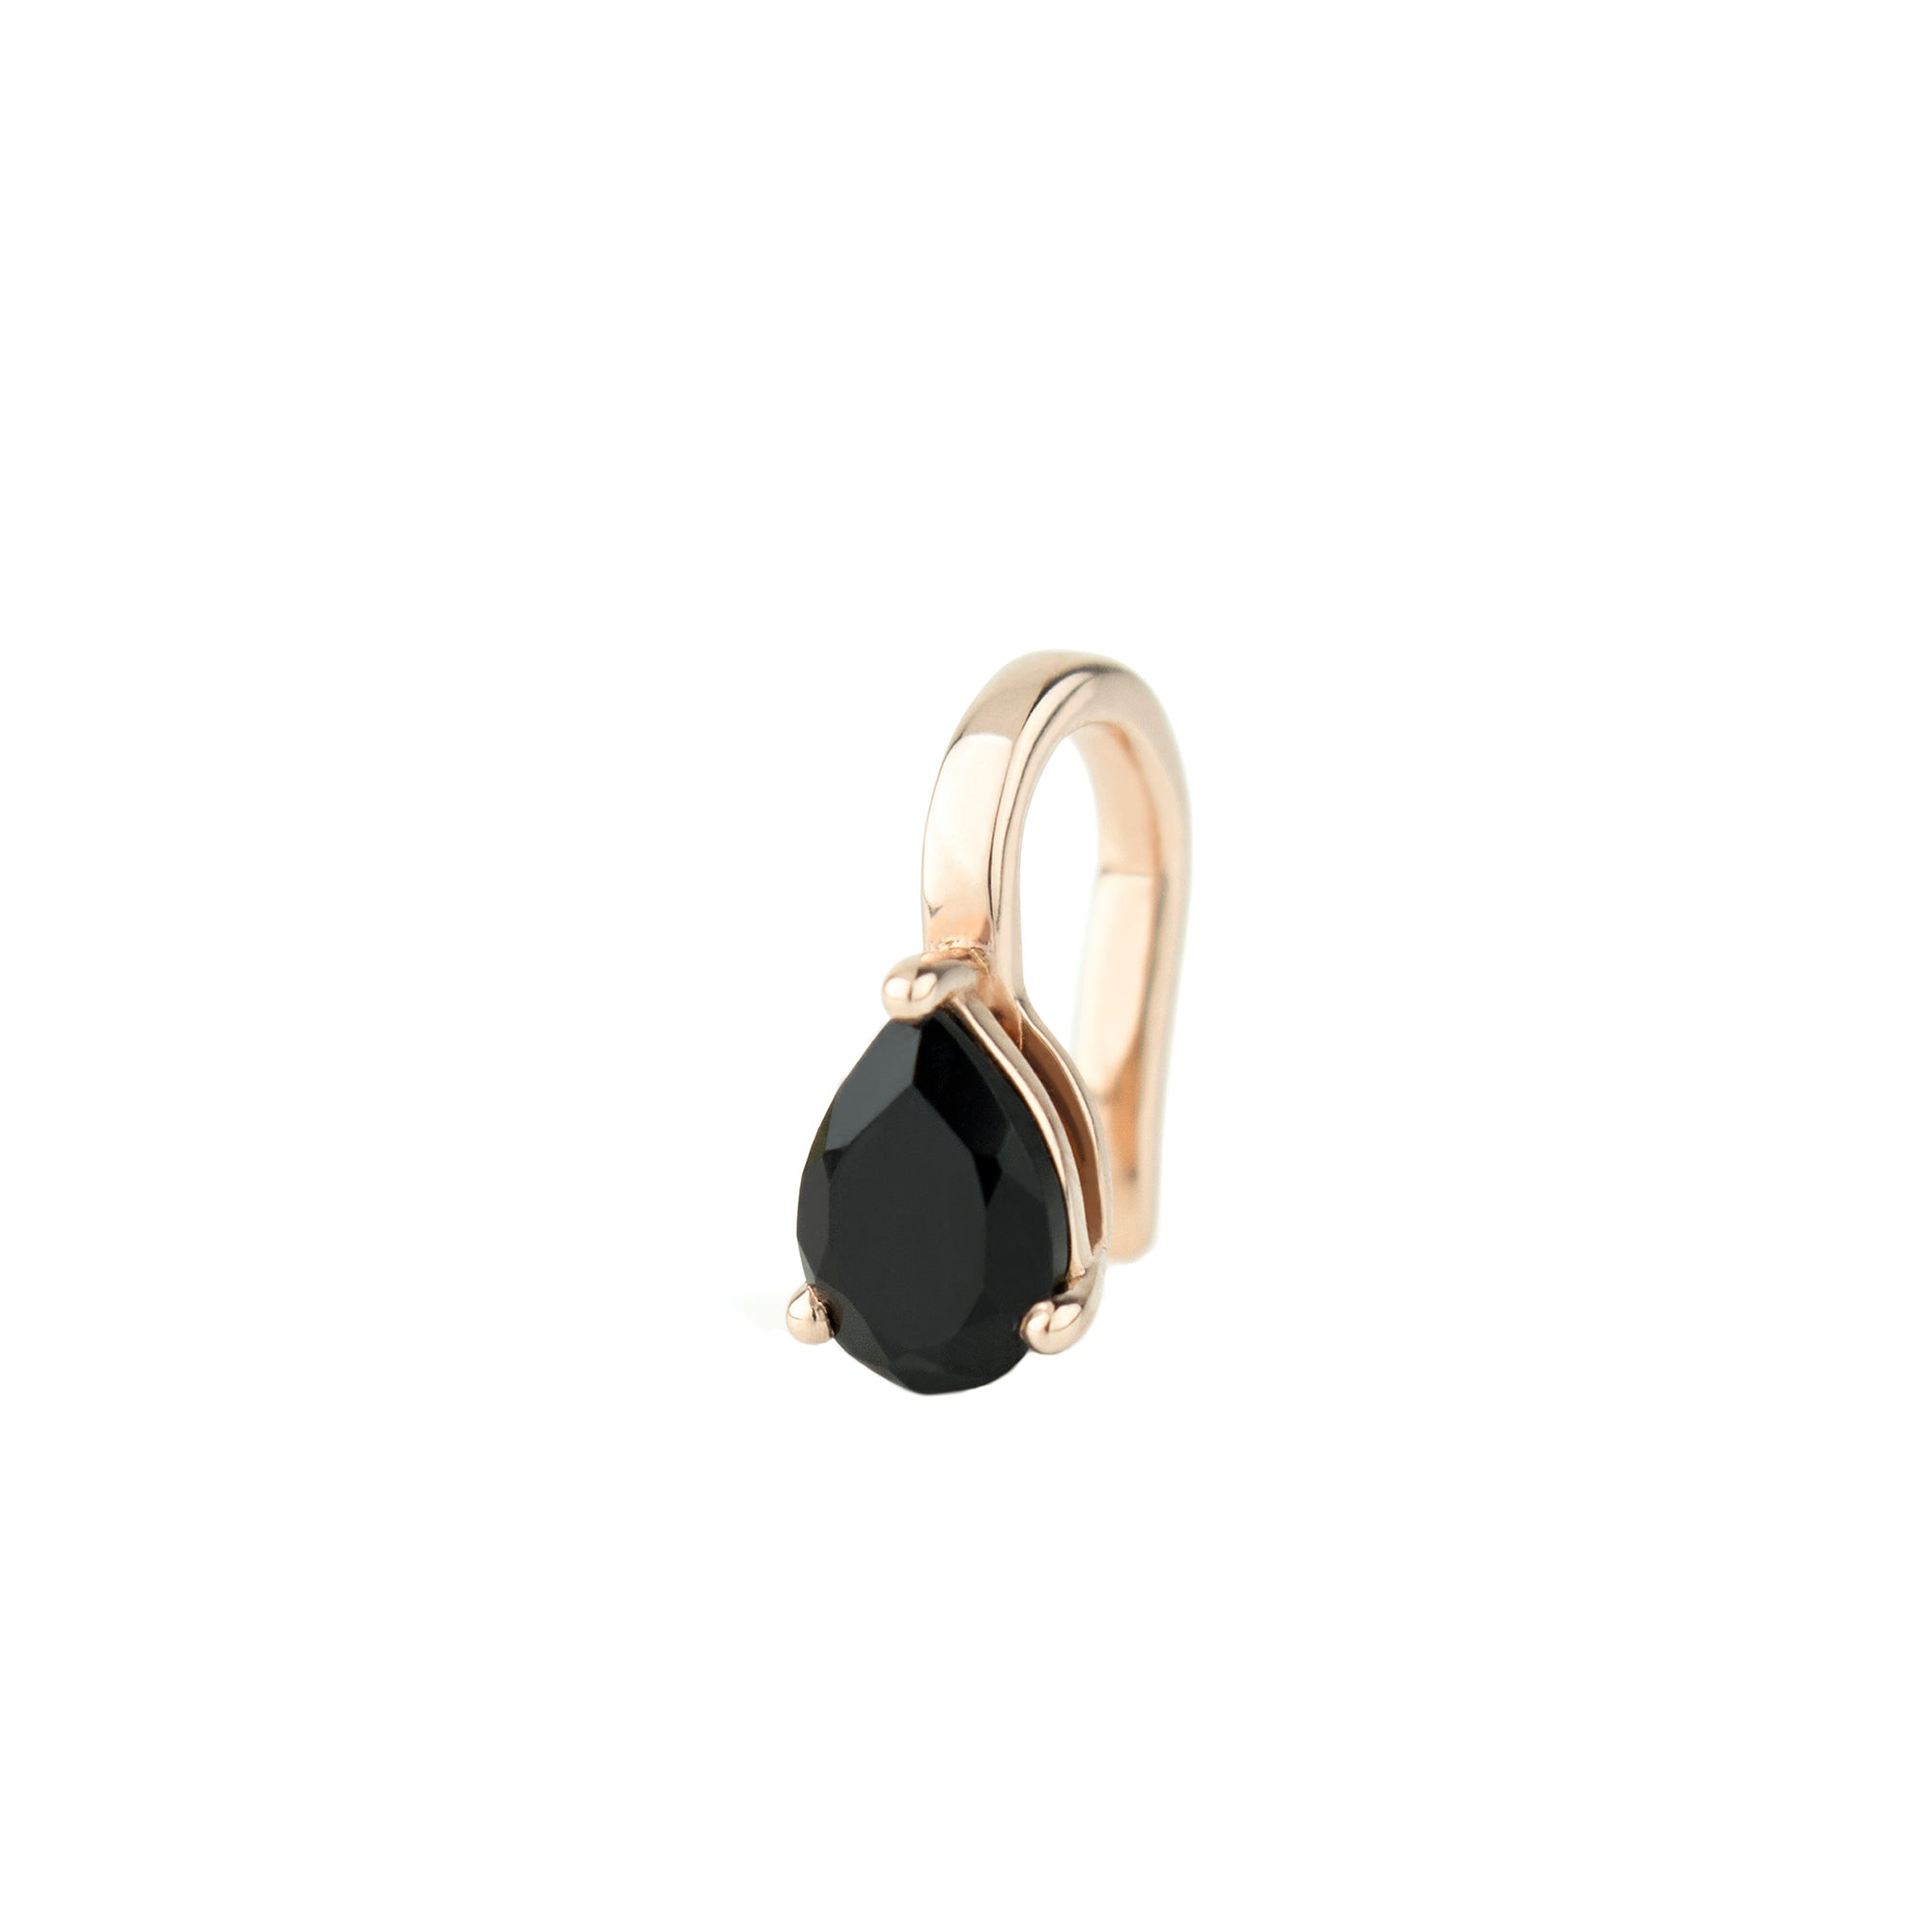 Altruist Black Spinel Pirum Ear Clip - Earrings - Broken English Jewelry